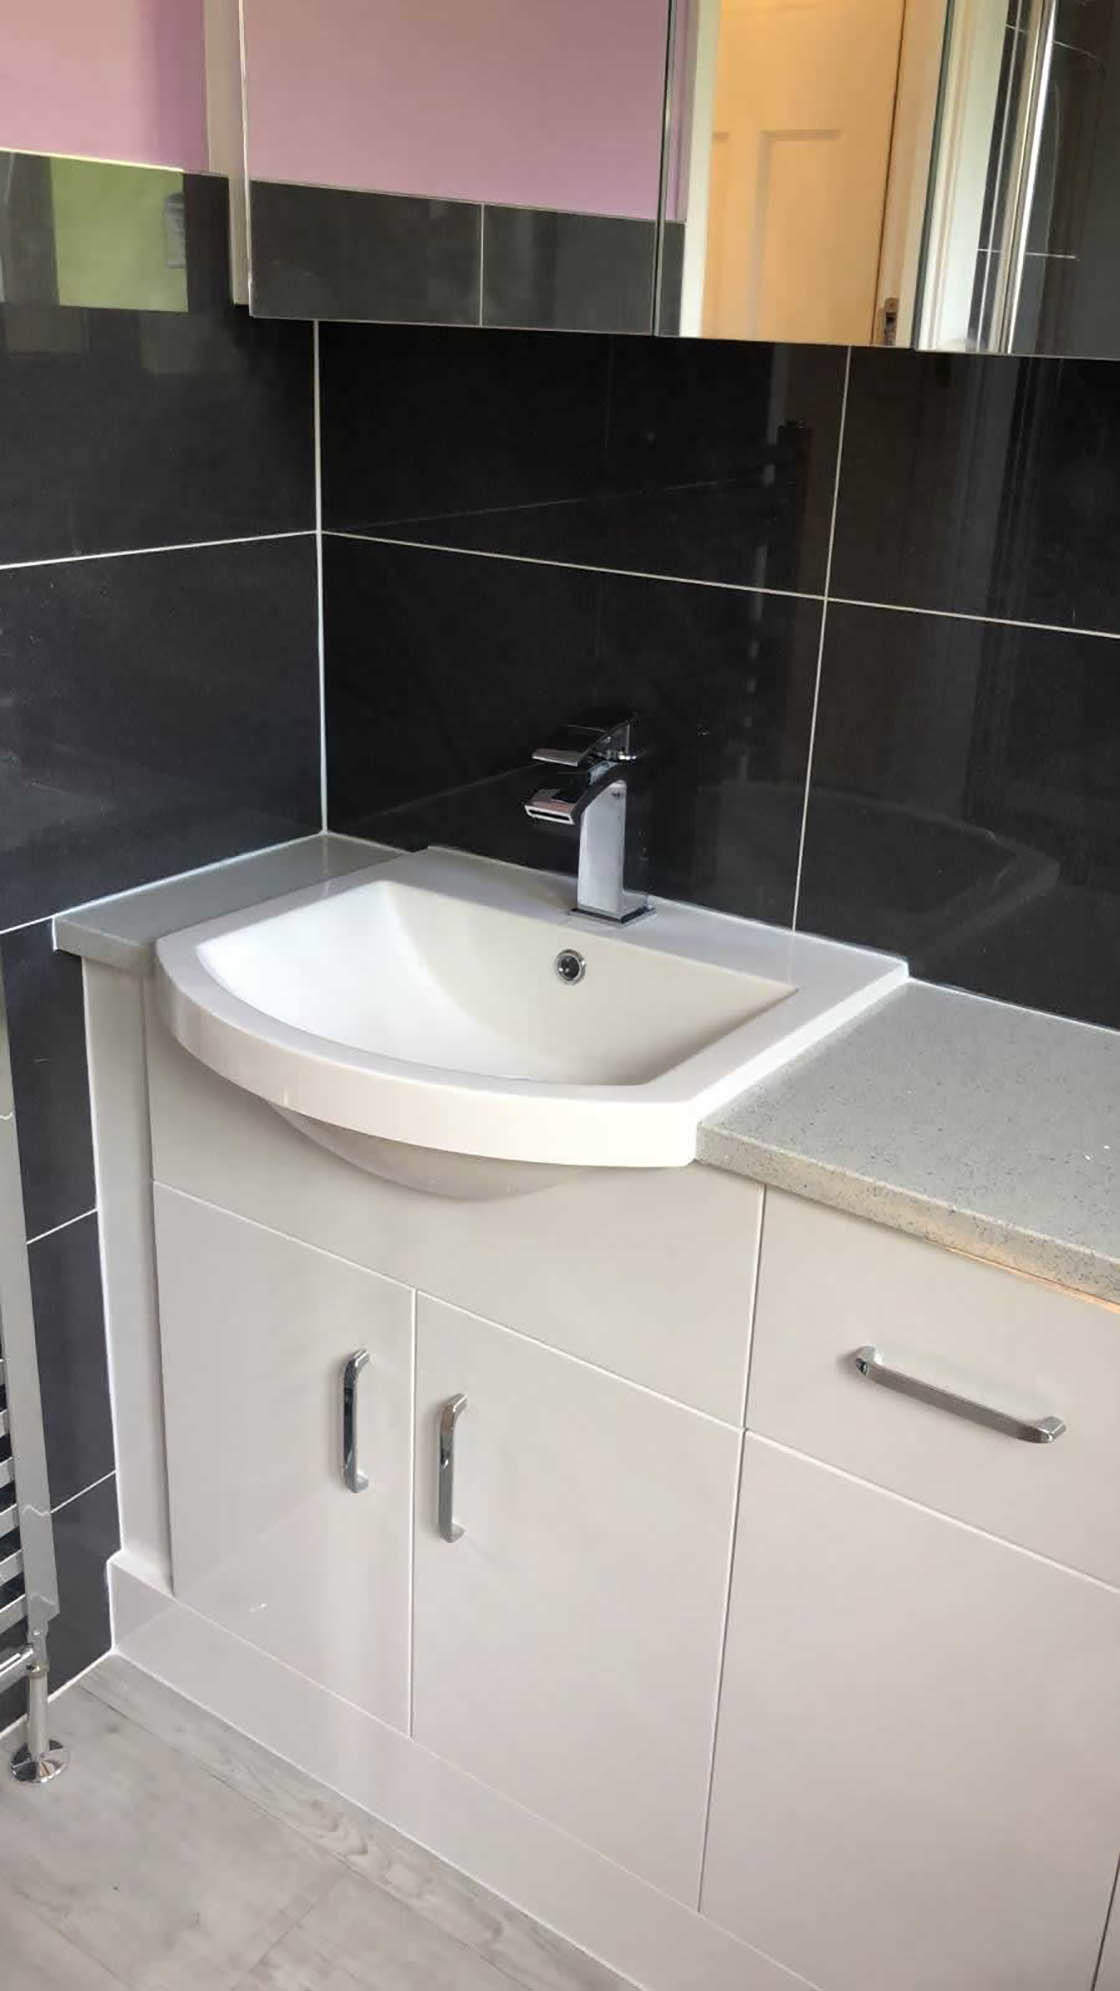 Compact Sink Unit in Bathroom